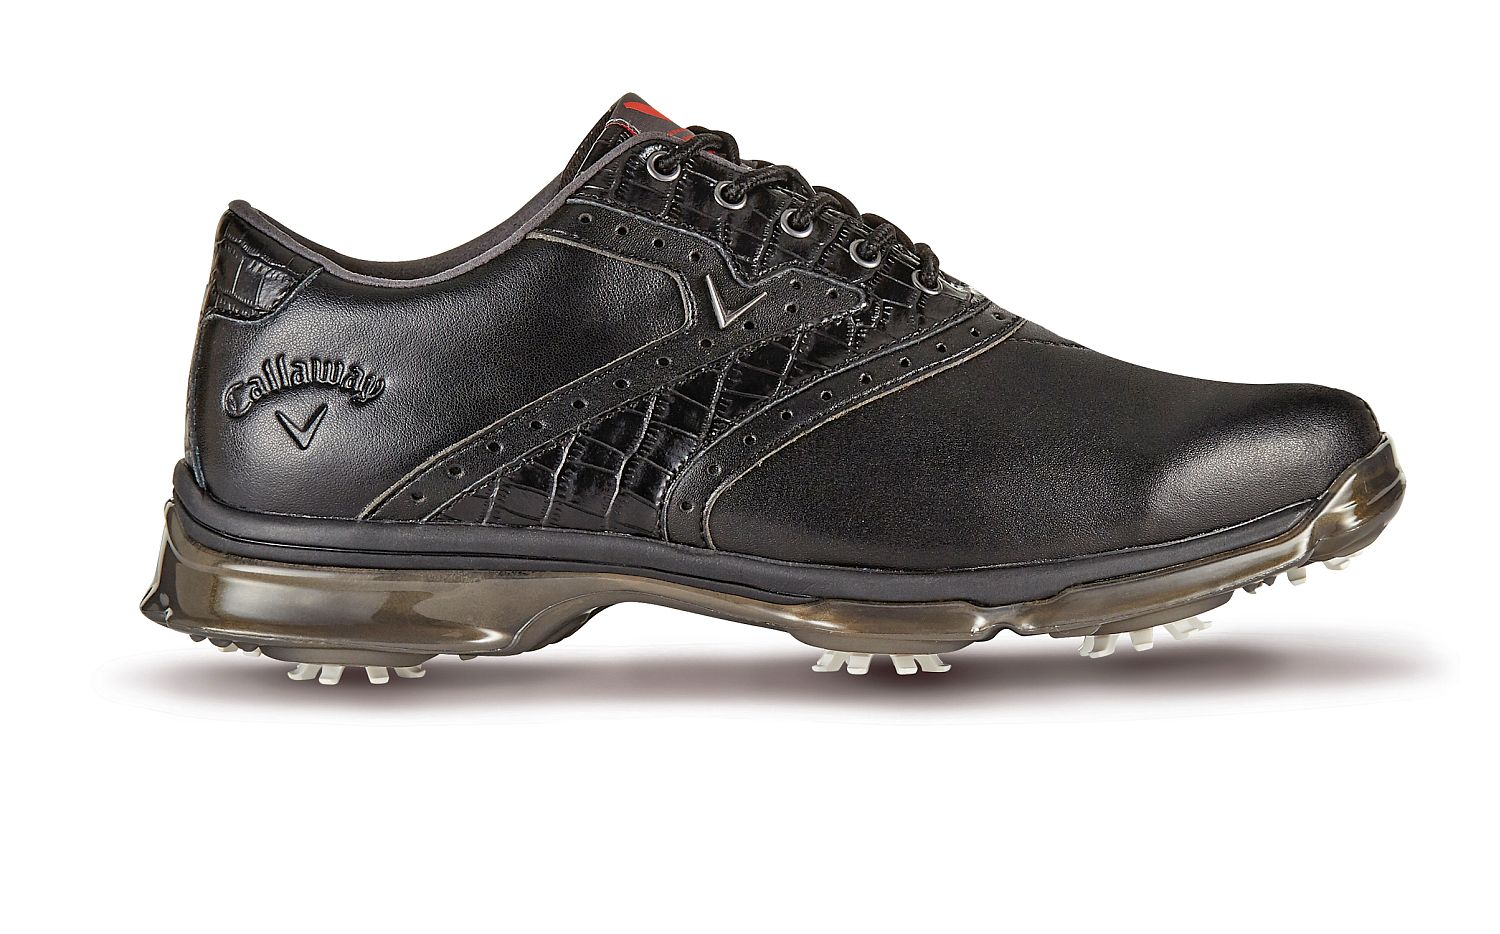 to buy limited guantity save up to 80% Mens Callaway X Nitro PT (Black) Golf Shoes Size: 9.5 | eBay